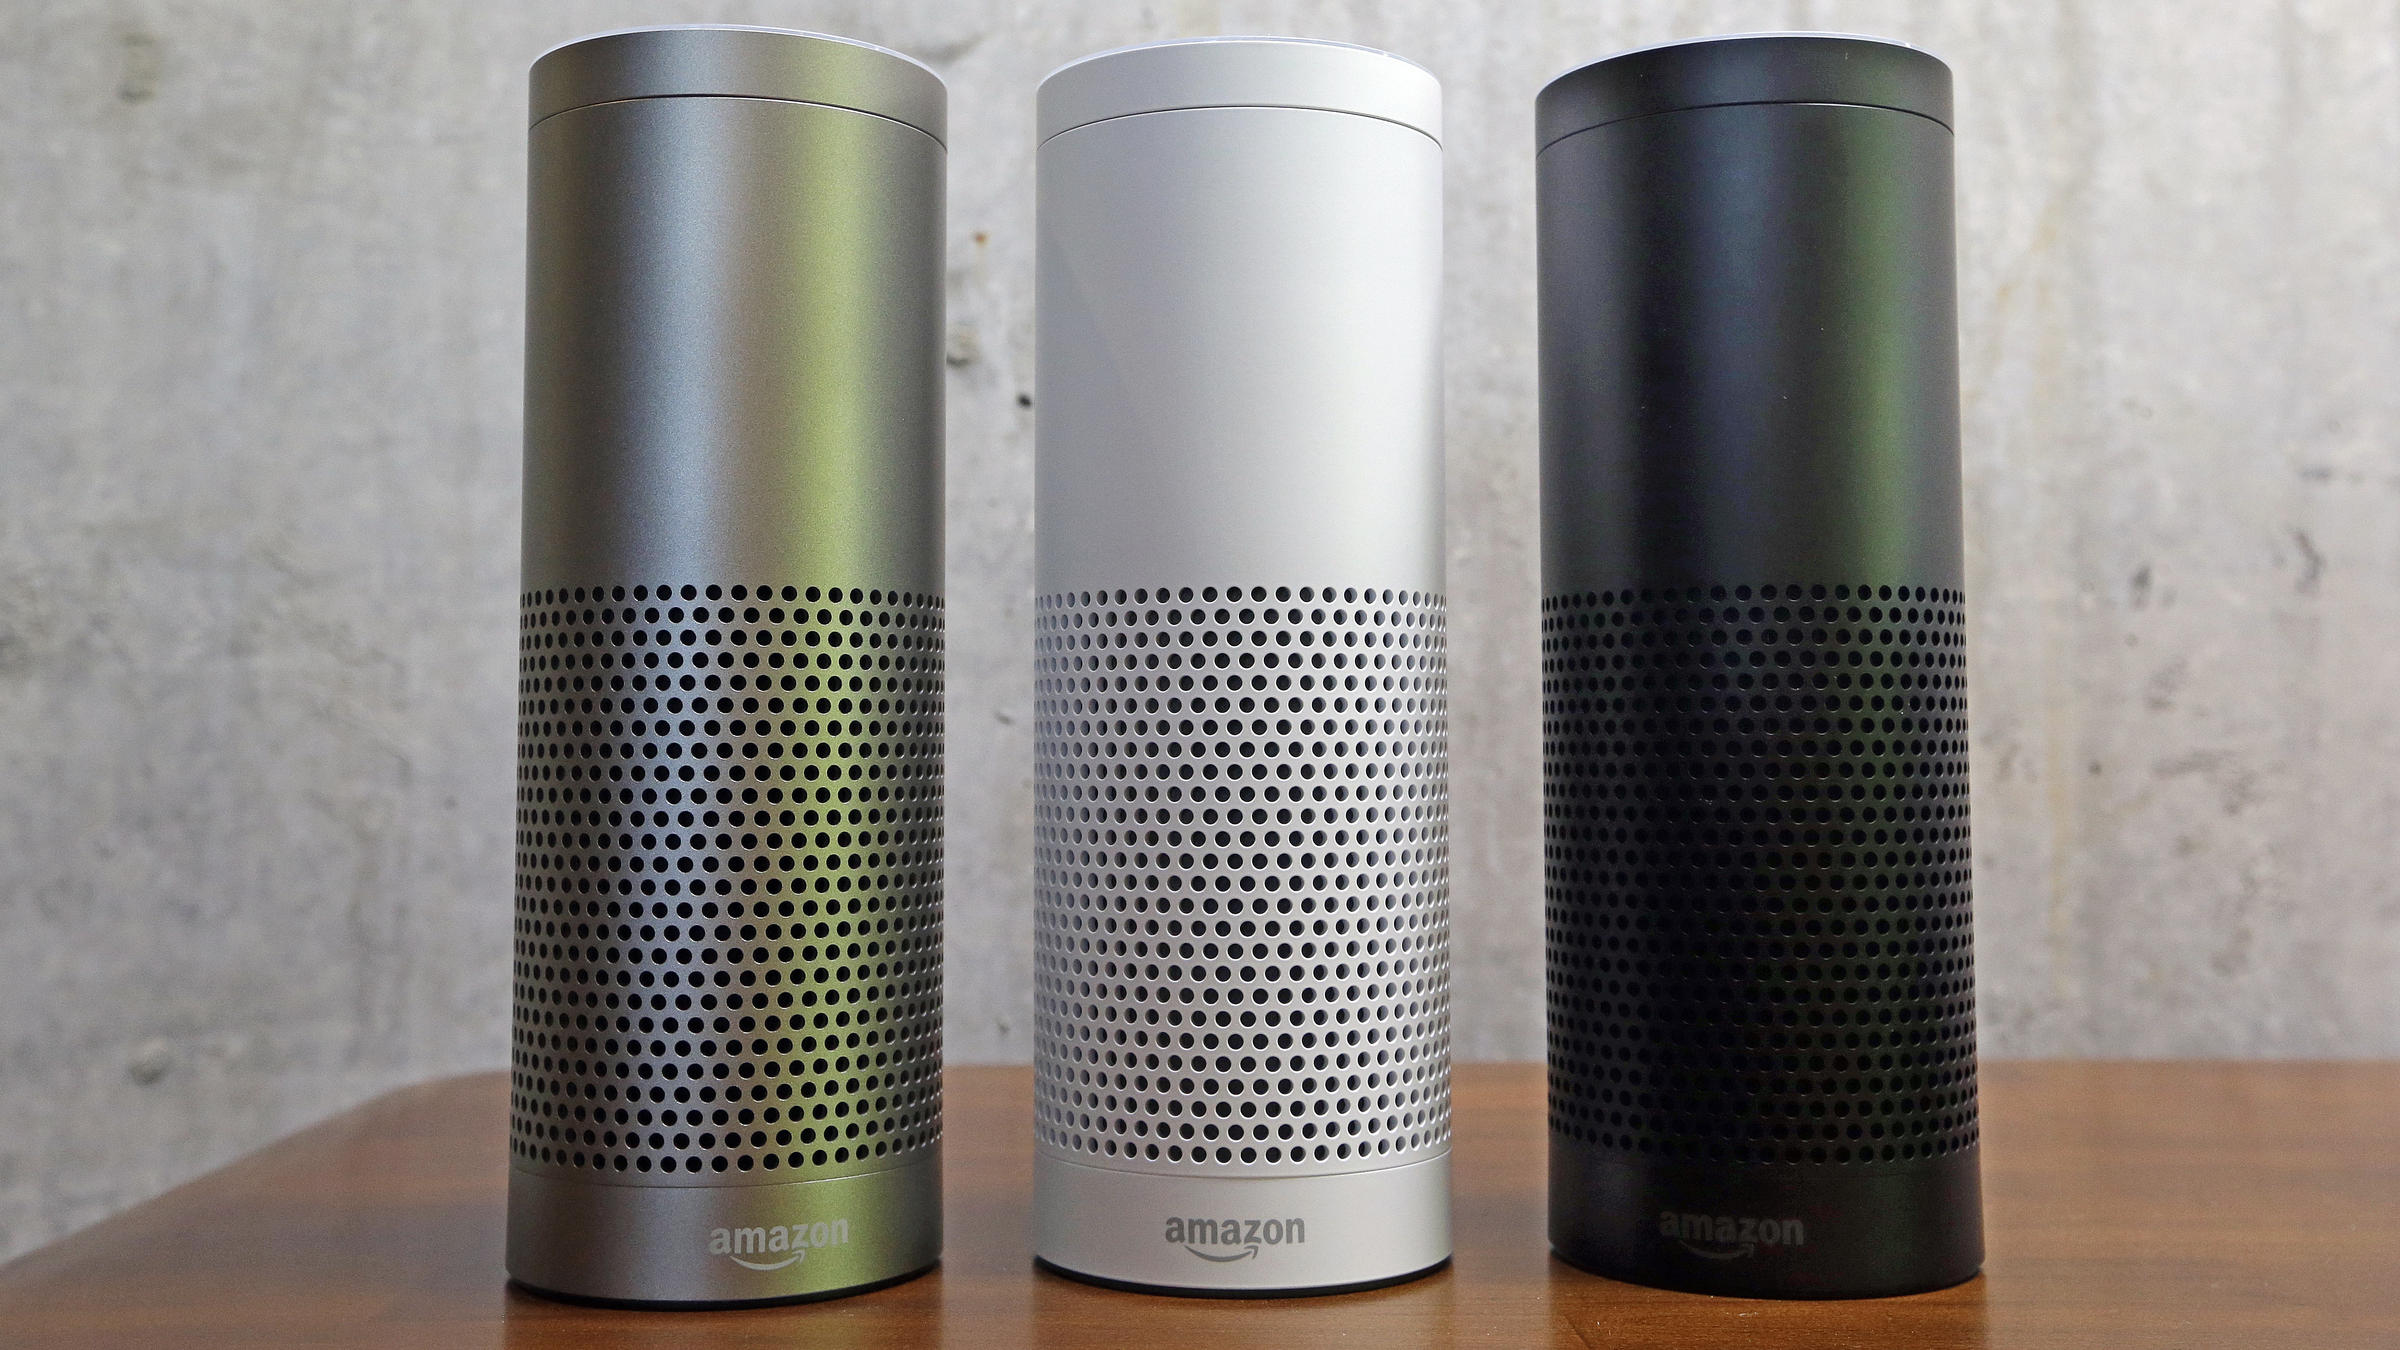 Alexa owners creeped out as devices start randomly laughing